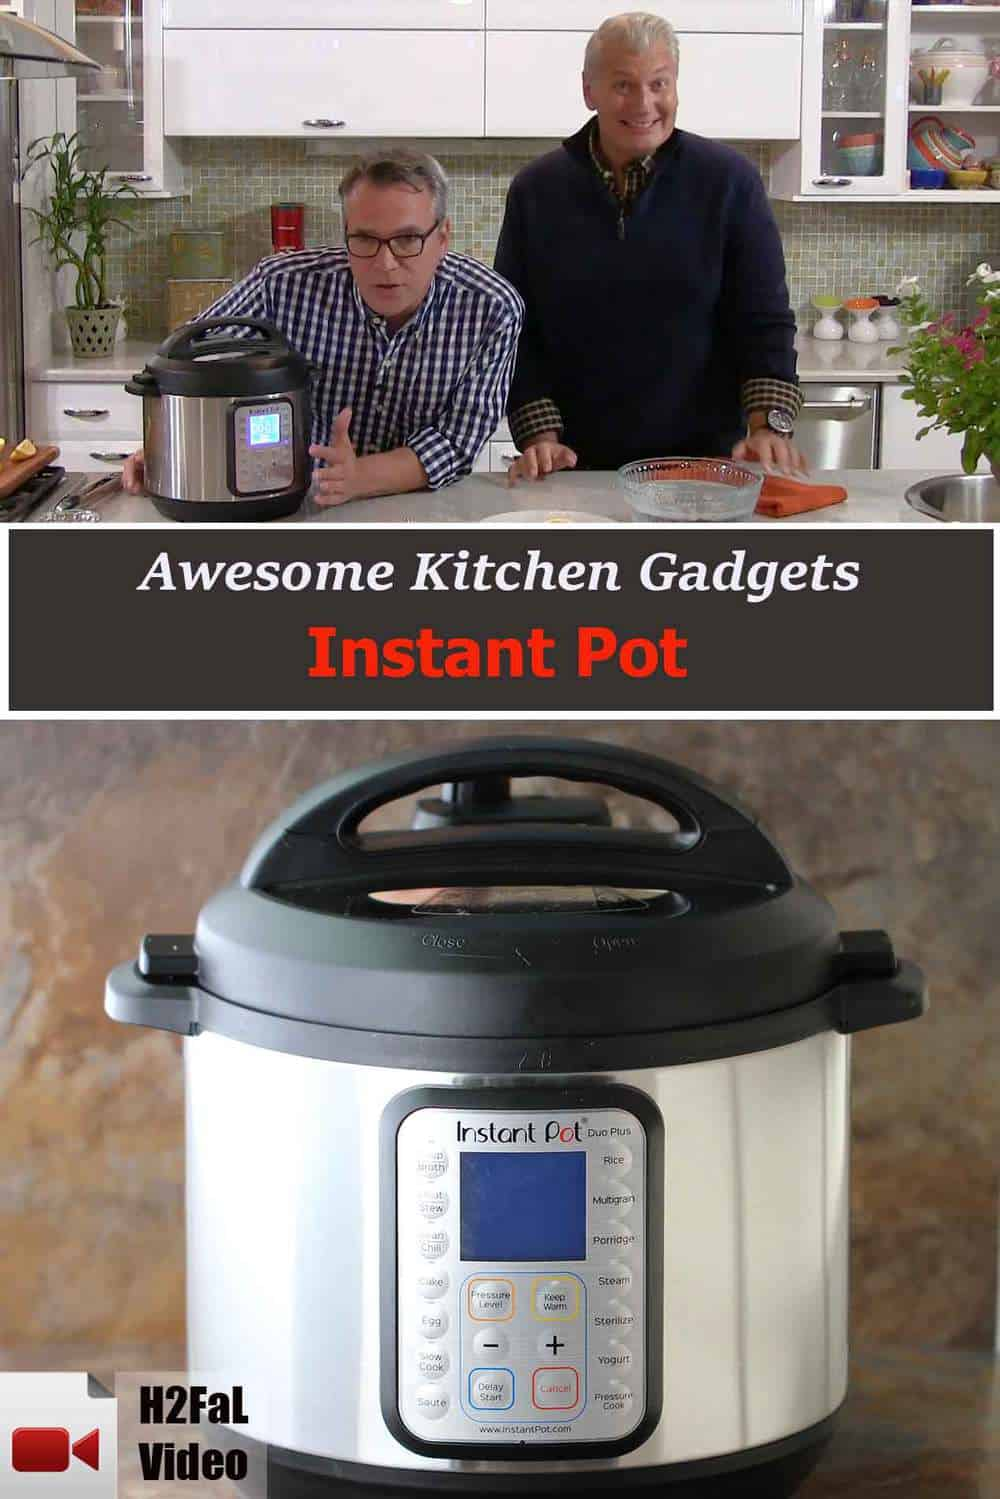 Awesome kitchen gadgets instant pot how to feed a loon Awesome kitchen gadgets